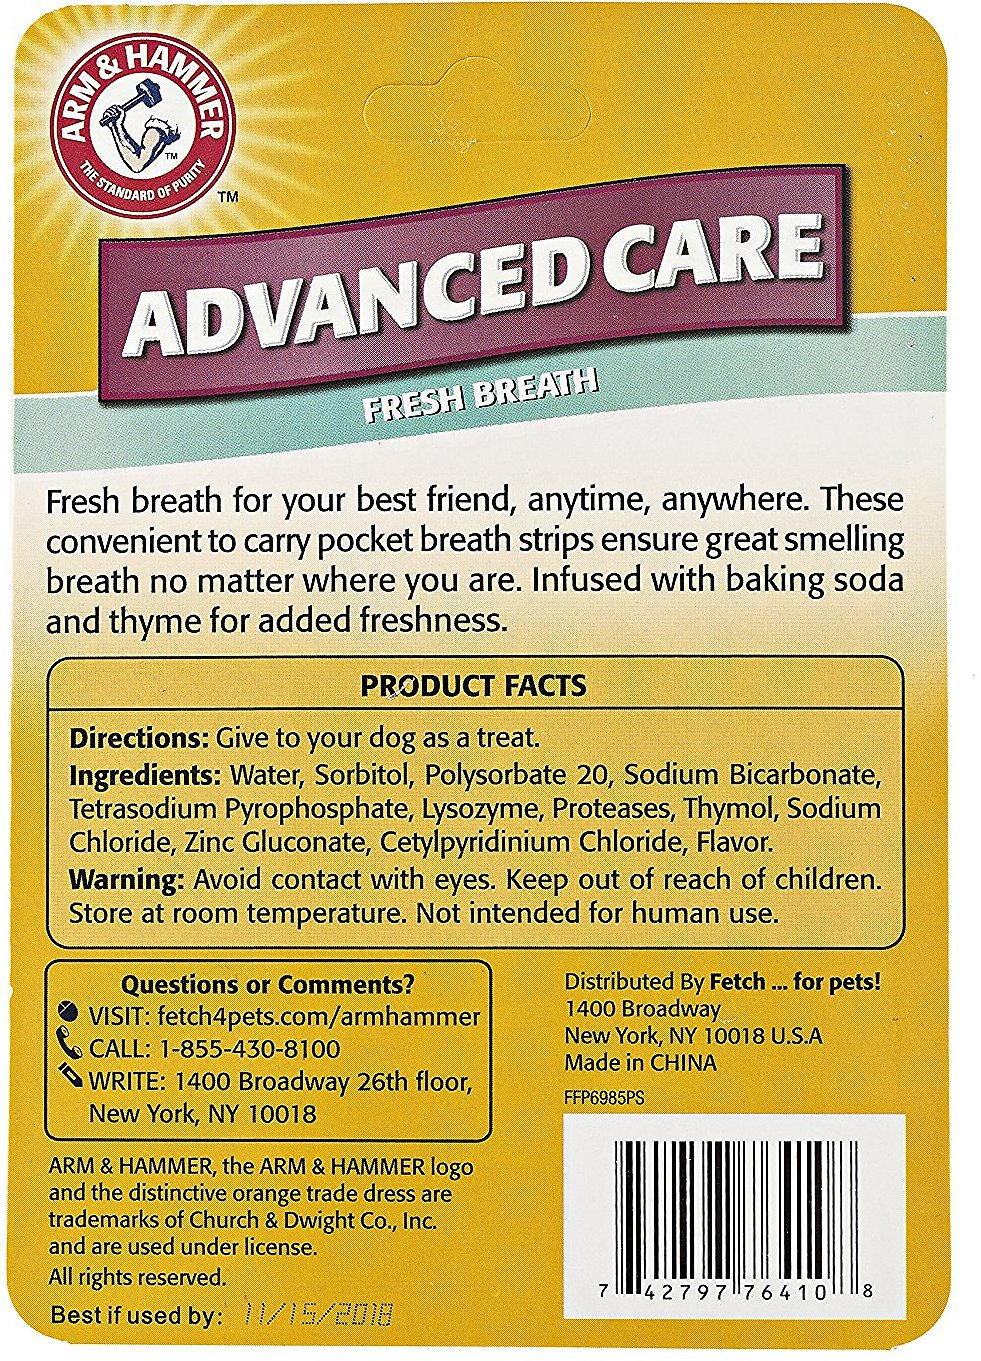 Arm & Hammer Advanced Care Mint Flavor Dog Breath Strips, 24 count